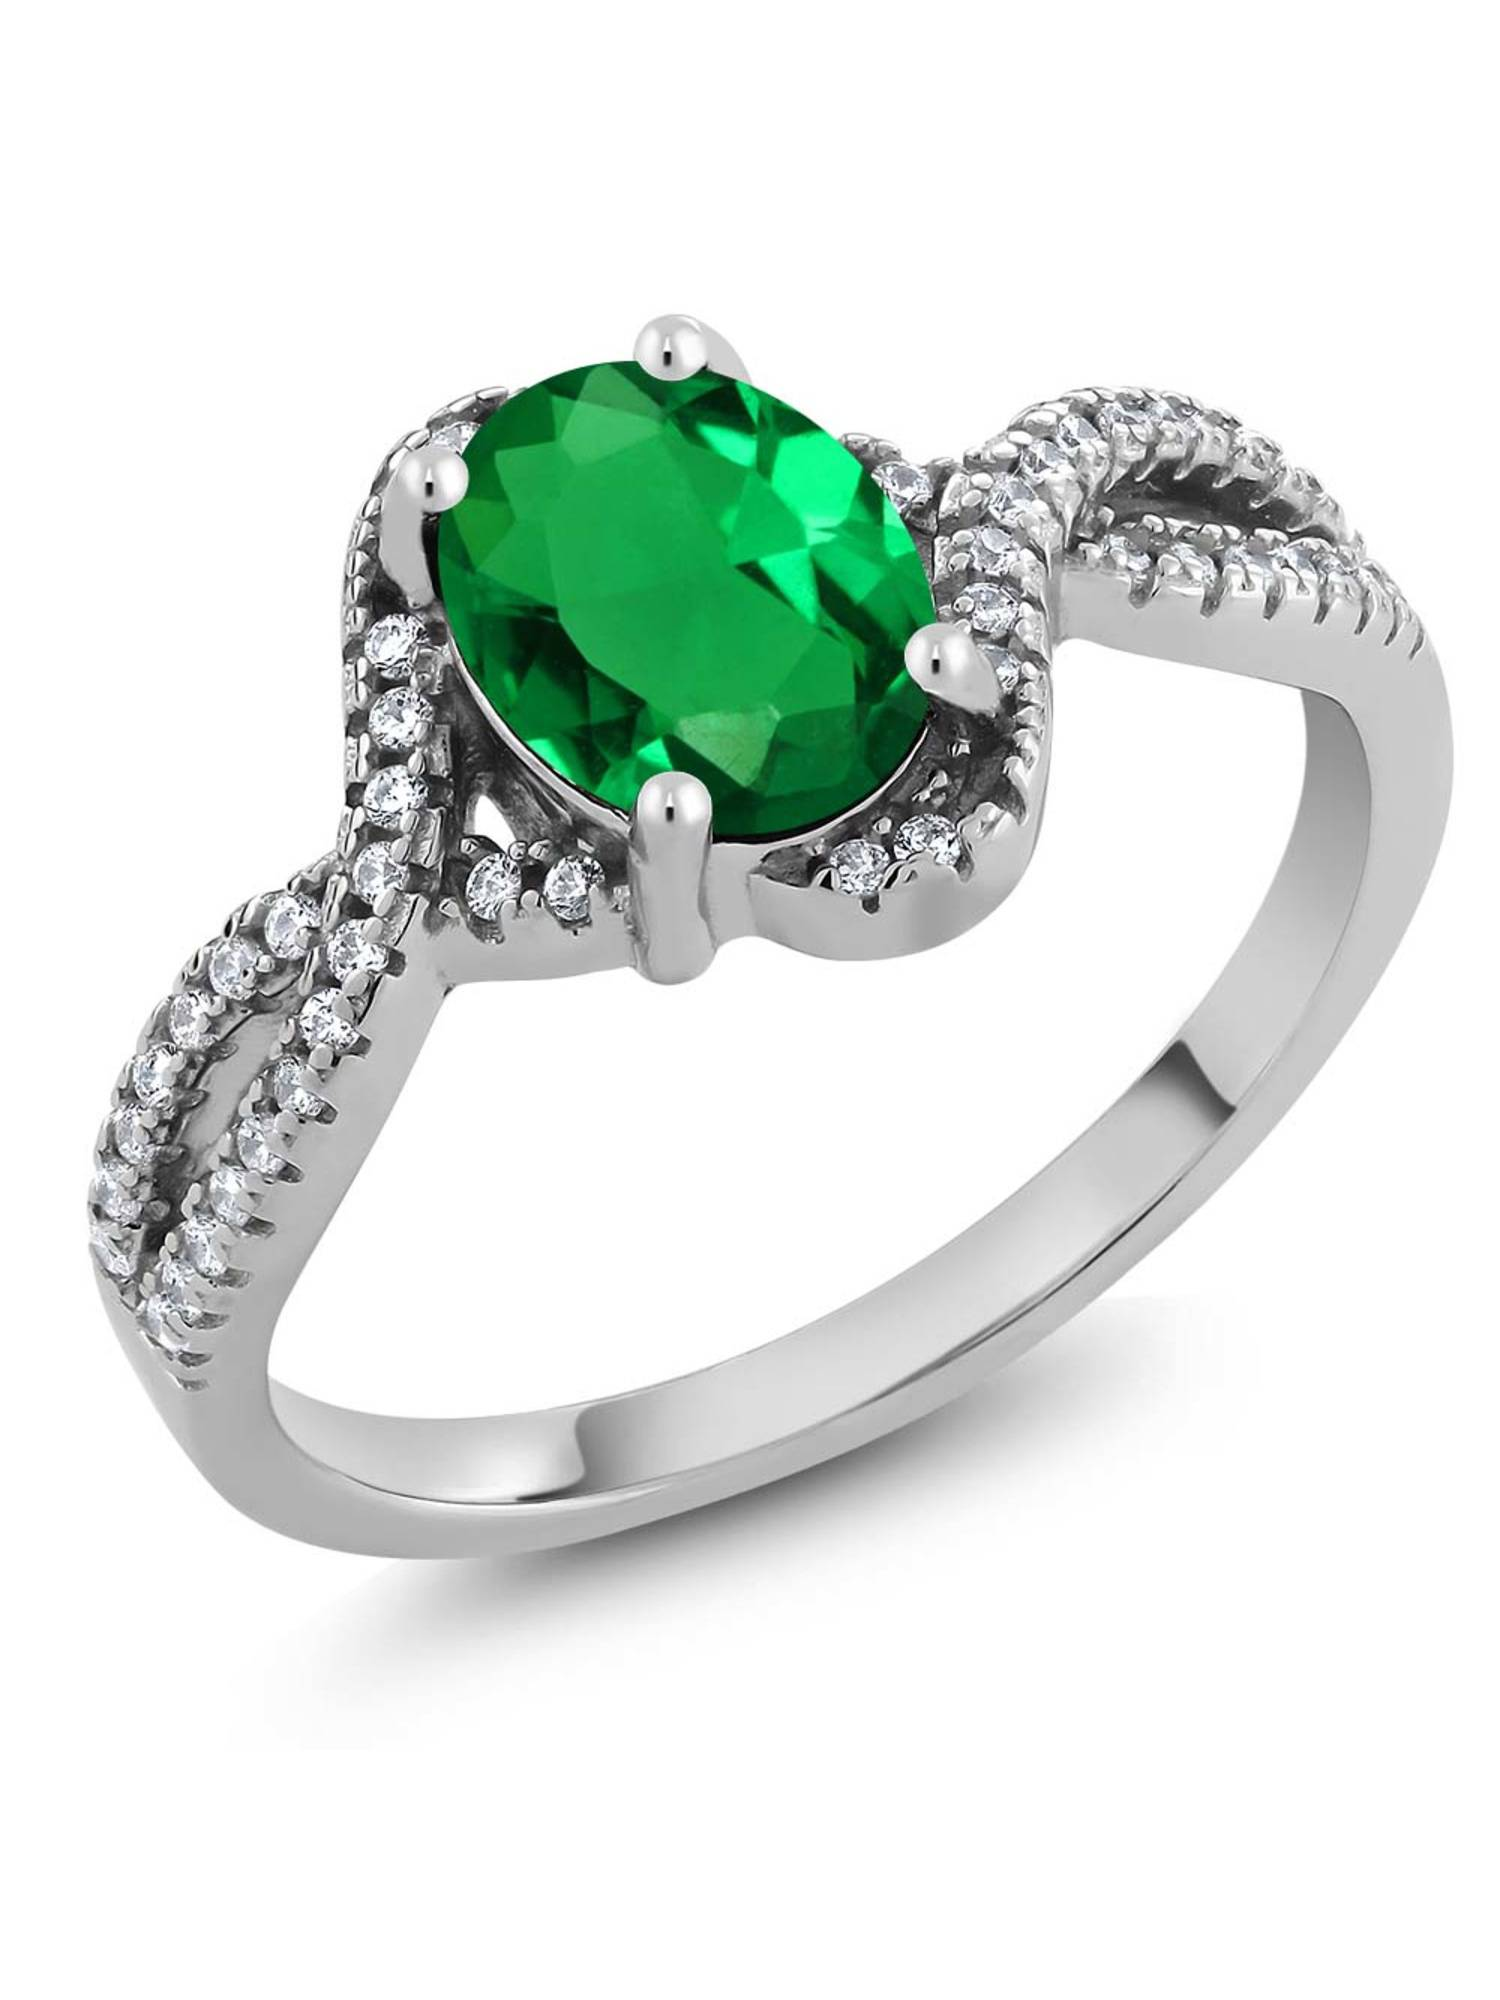 1.73 Ct Oval 8x6mm Green Nano Emerald 925 Sterling Silver Ring